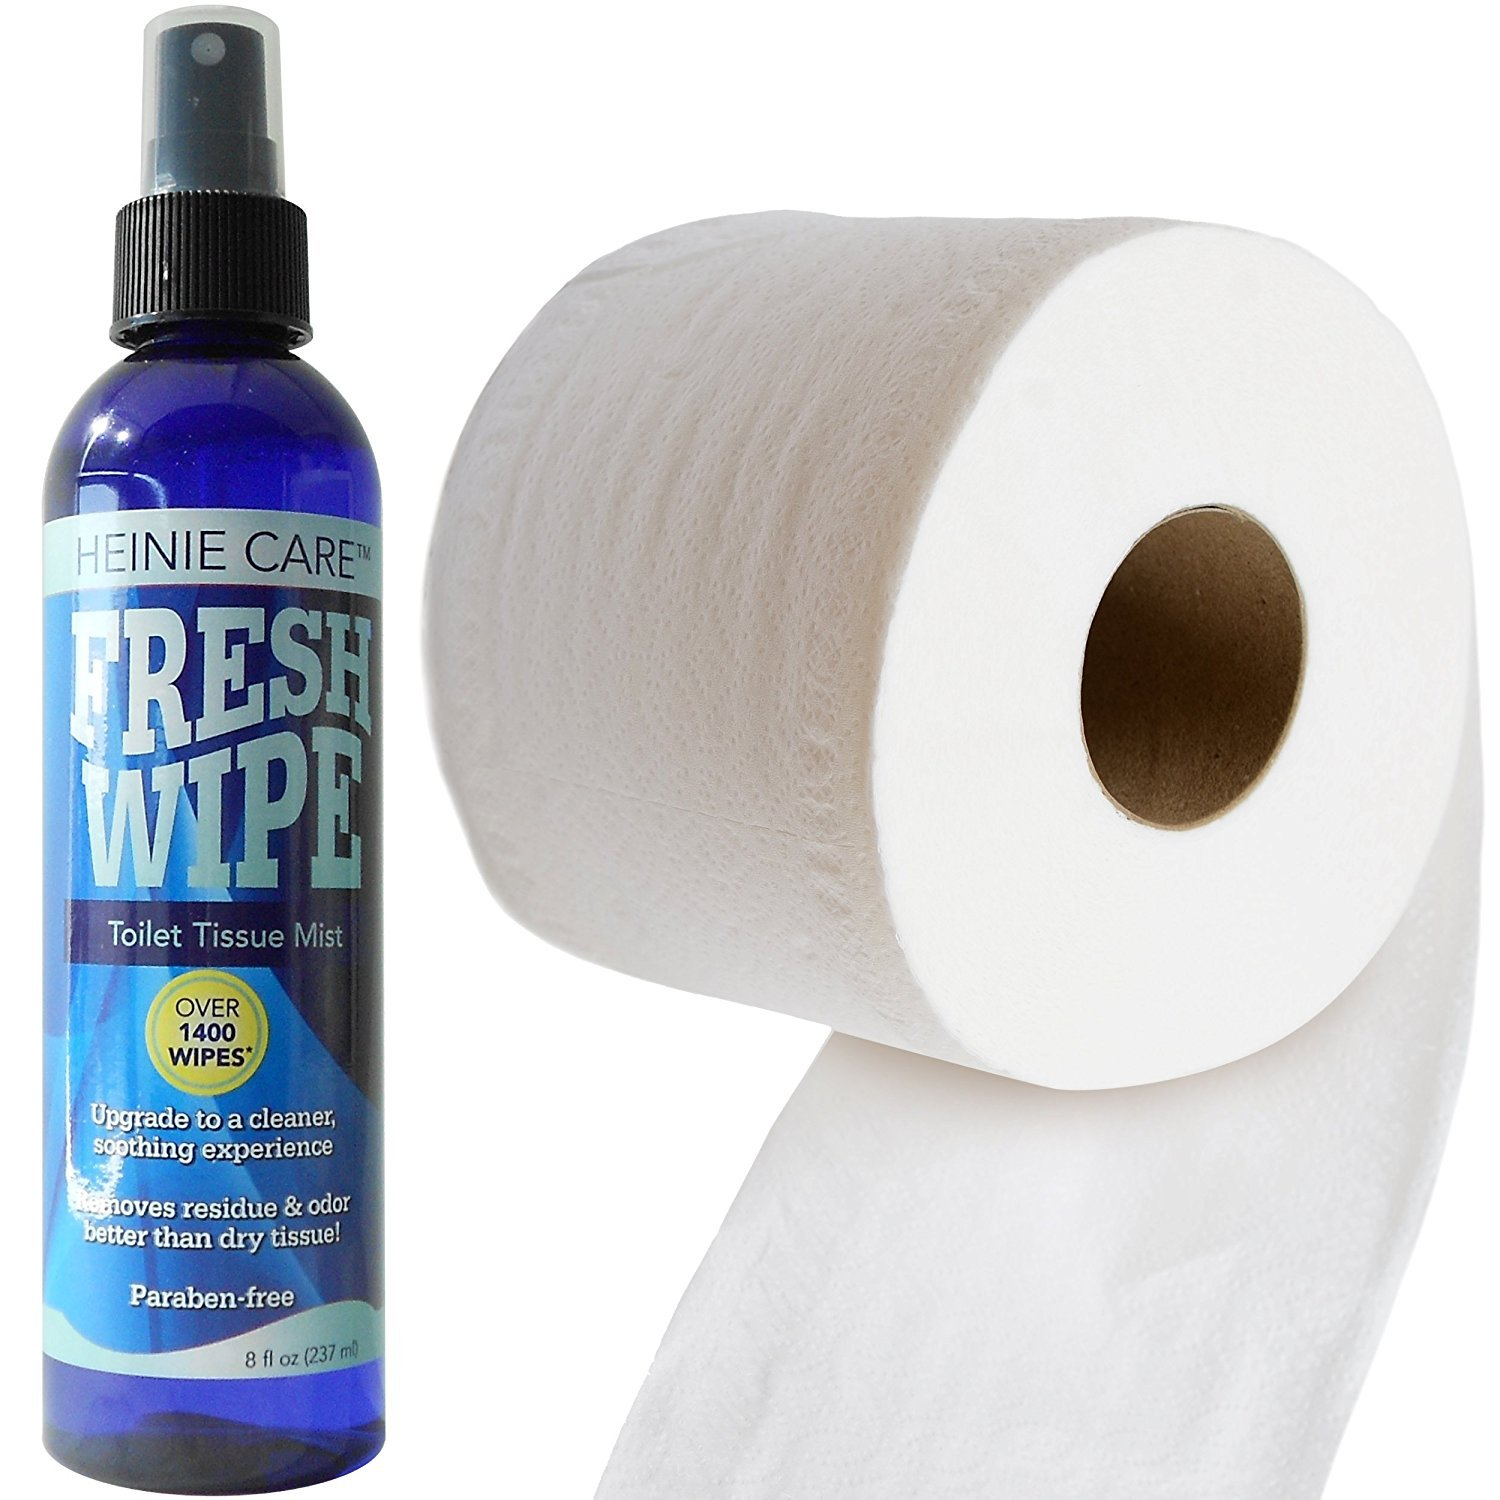 Fresh Wipe Toilet Tissue Spray- Instantly Turn Your Toilet Paper into a Wipe. Don't Clog Toilets. 1400 Sprays per Bottle. (Two - 8oz) by Fresh Wipe